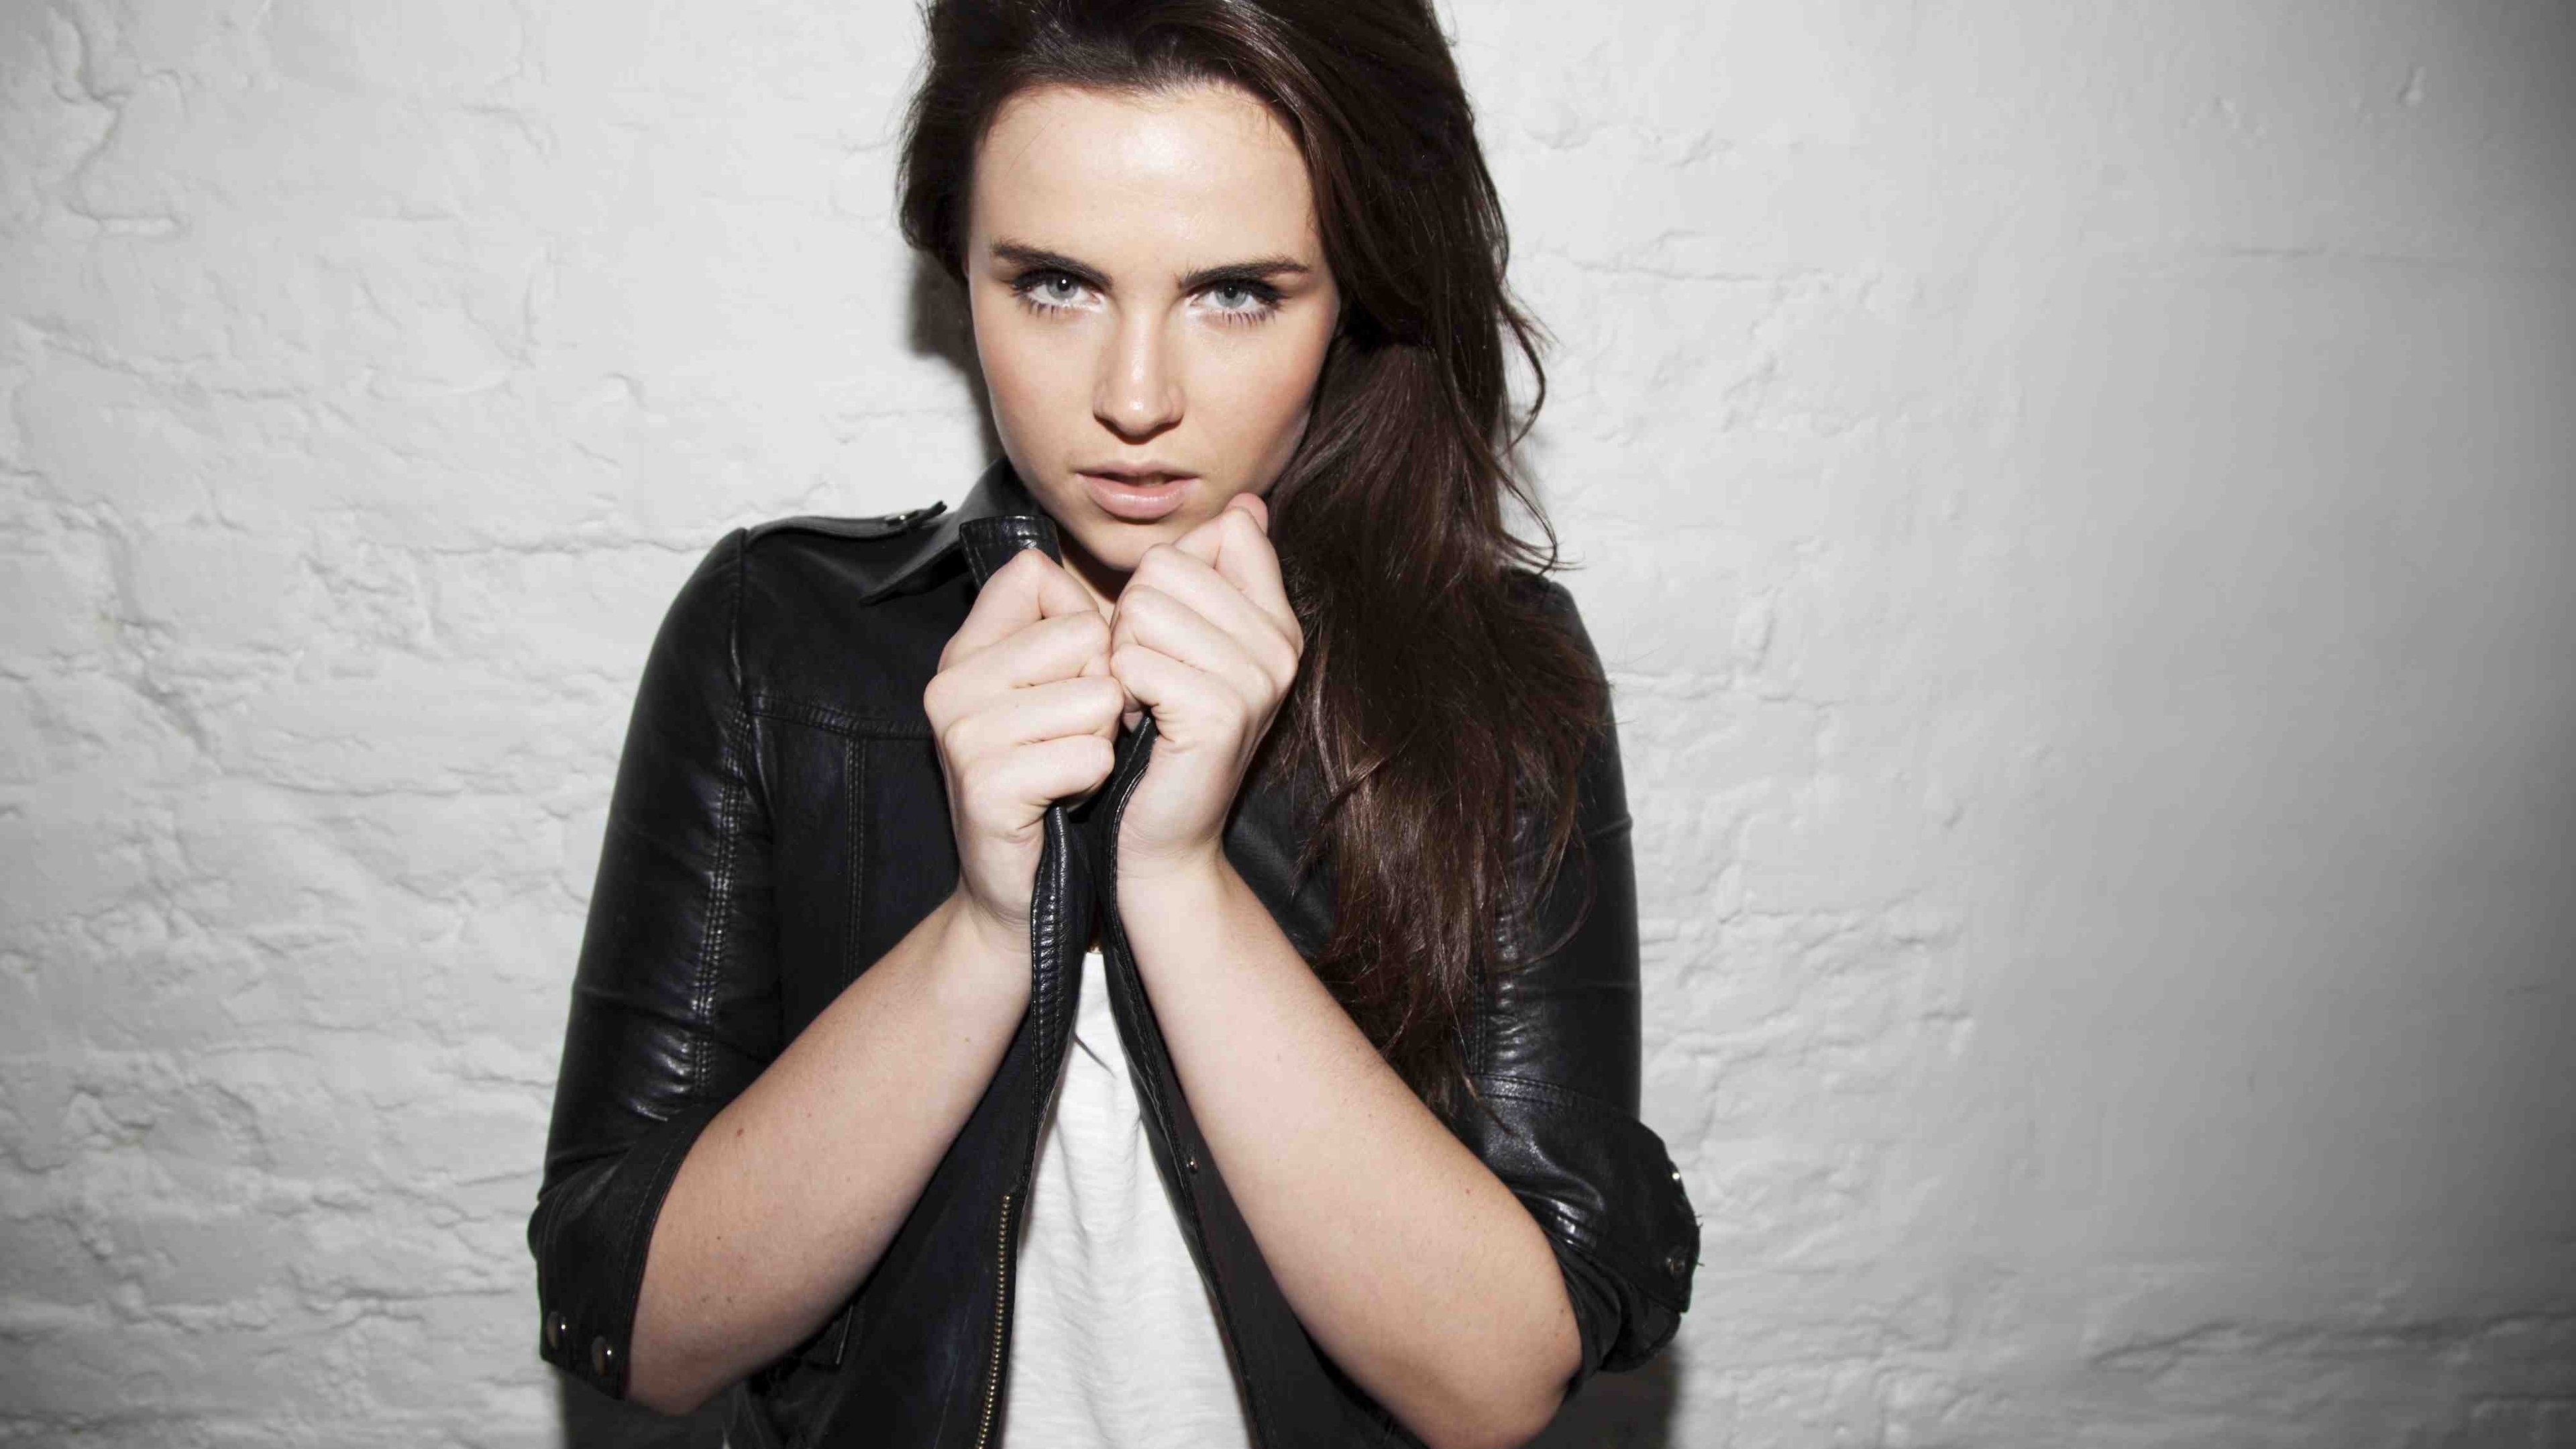 emer kenny 1536863011 - Emer Kenny - hd-wallpapers, girls wallpapers, emer kenny wallpapers, celebrities wallpapers, 4k-wallpapers